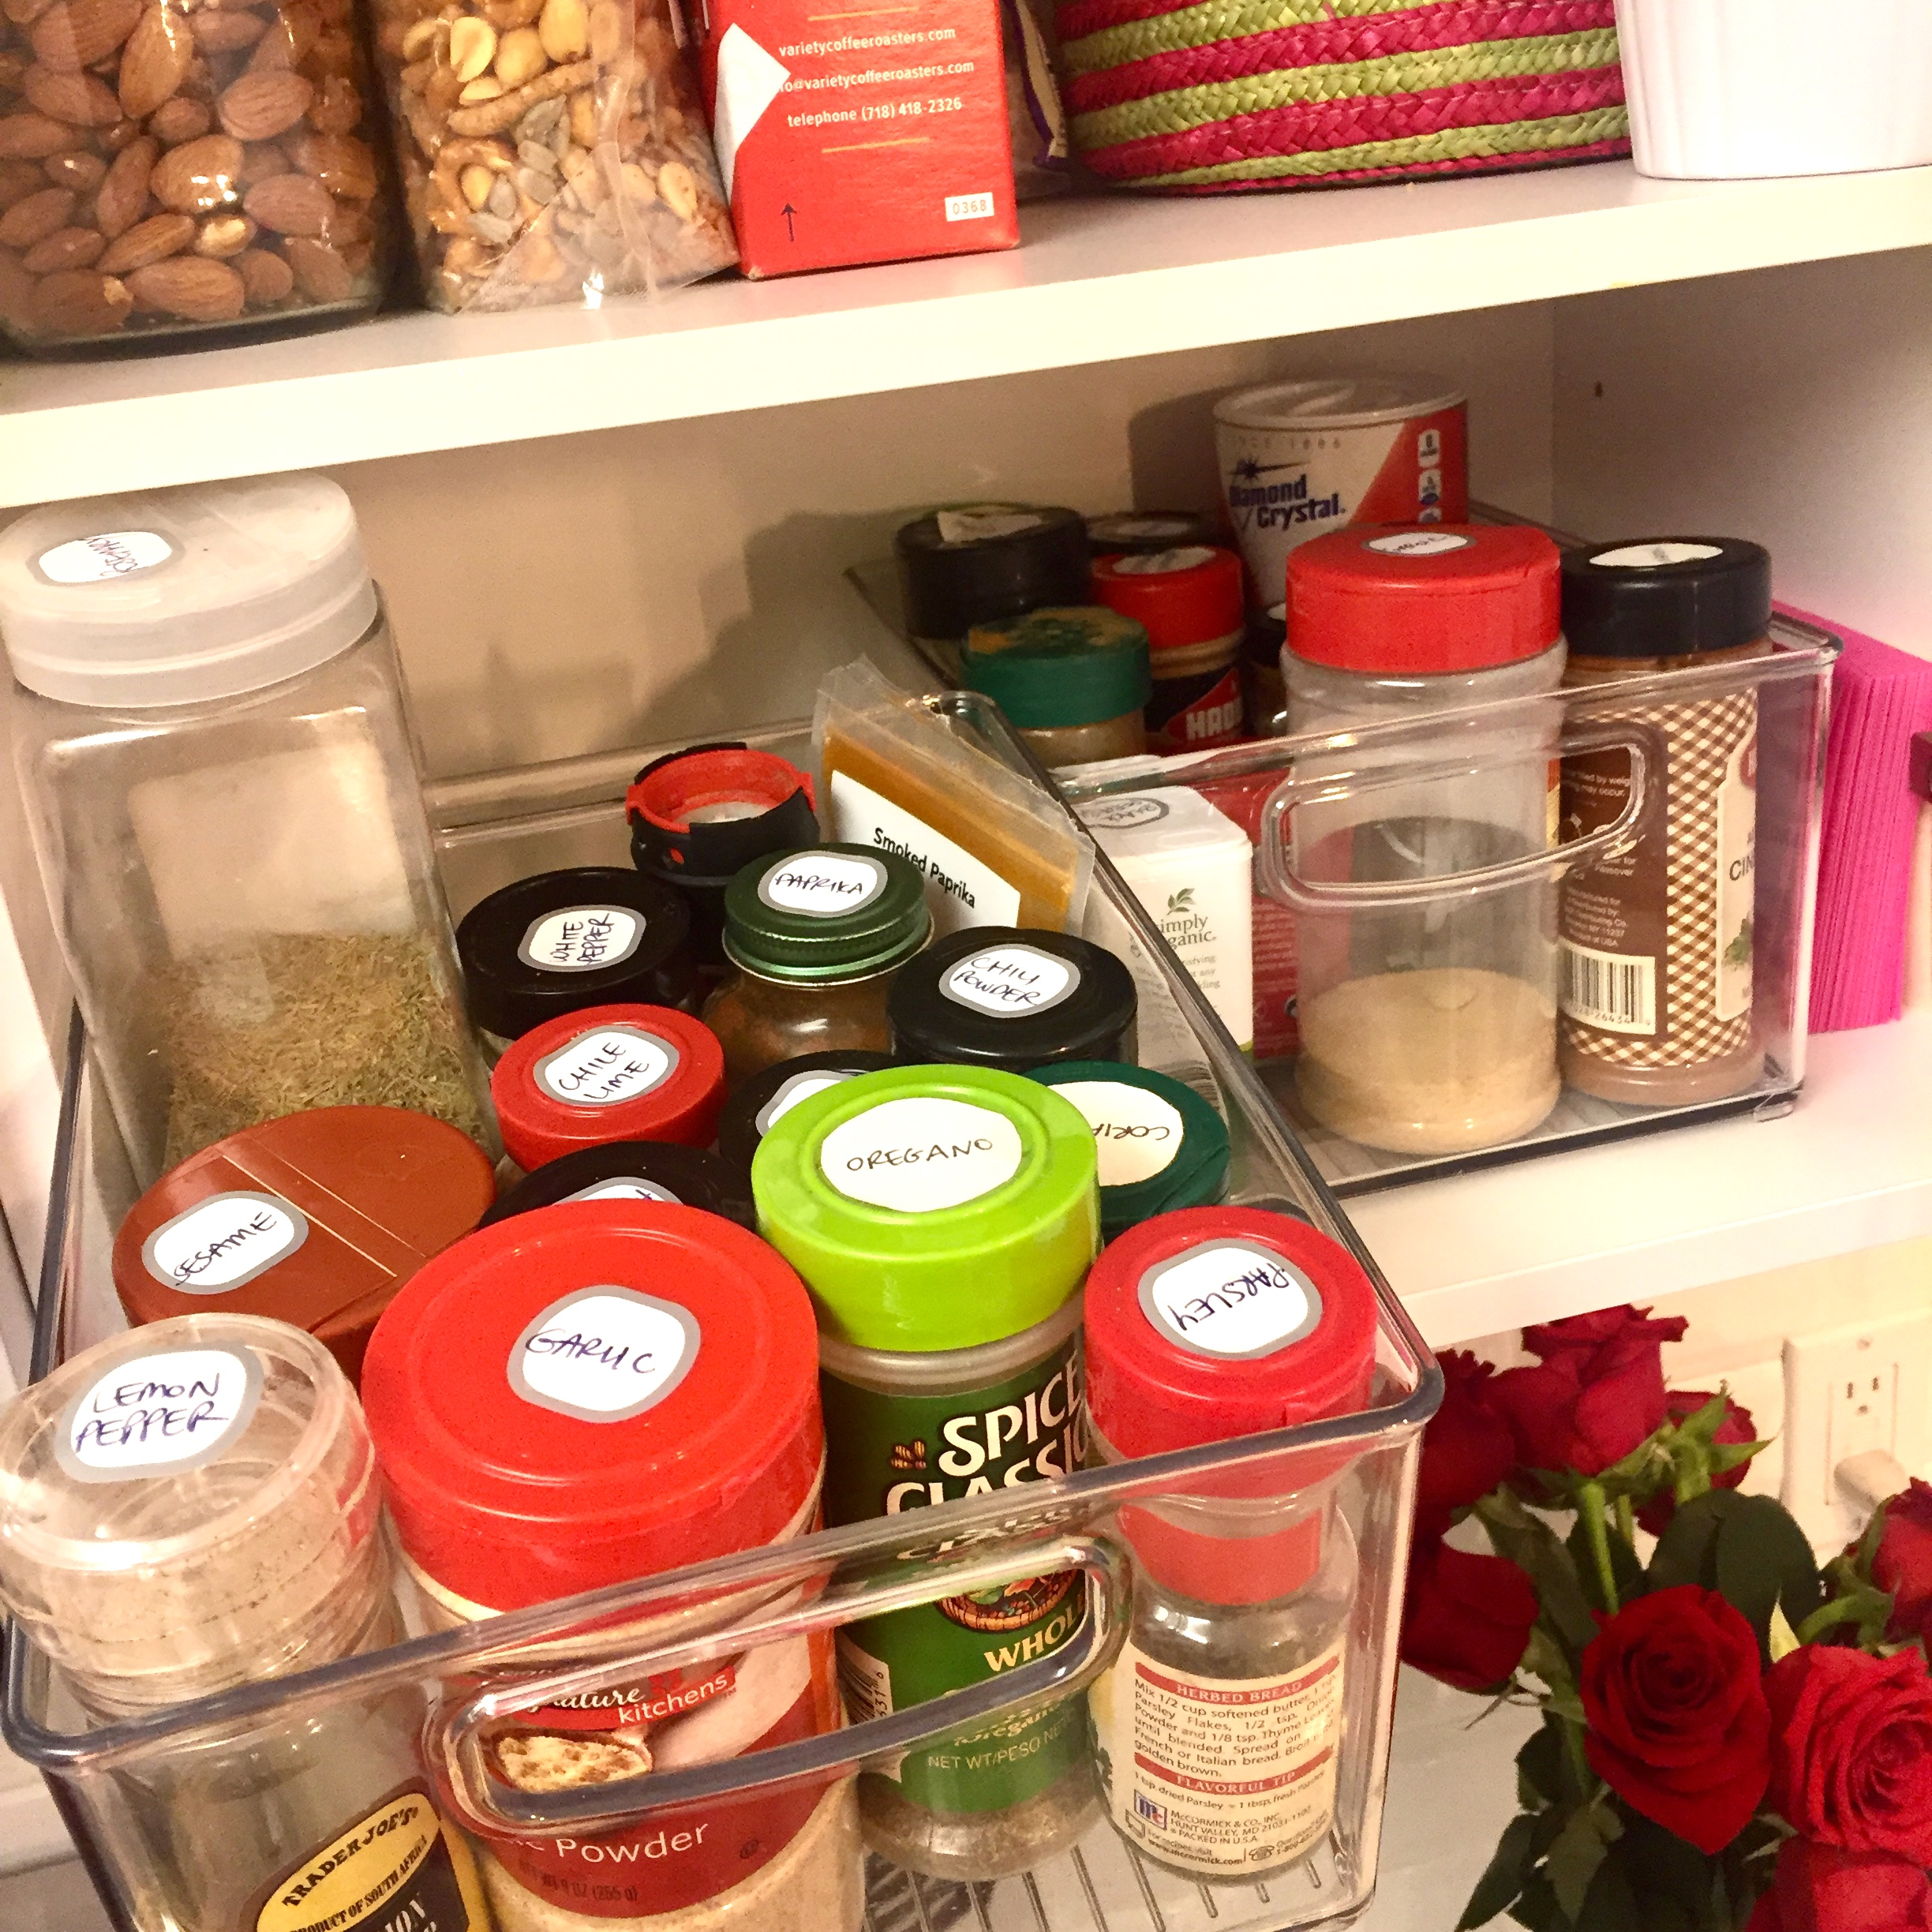 Binzzzzzzz - If you've gotta store your spices on a shelf, putting them in a bin and labeling the tops is a fantastic solution to the search for the spice you need. Pull out the entire bin and grab what you need before your saucey concoction starts to burn on the stove. Heck, add bins wherever you need to contain like-ingredients (baking goods, for example).